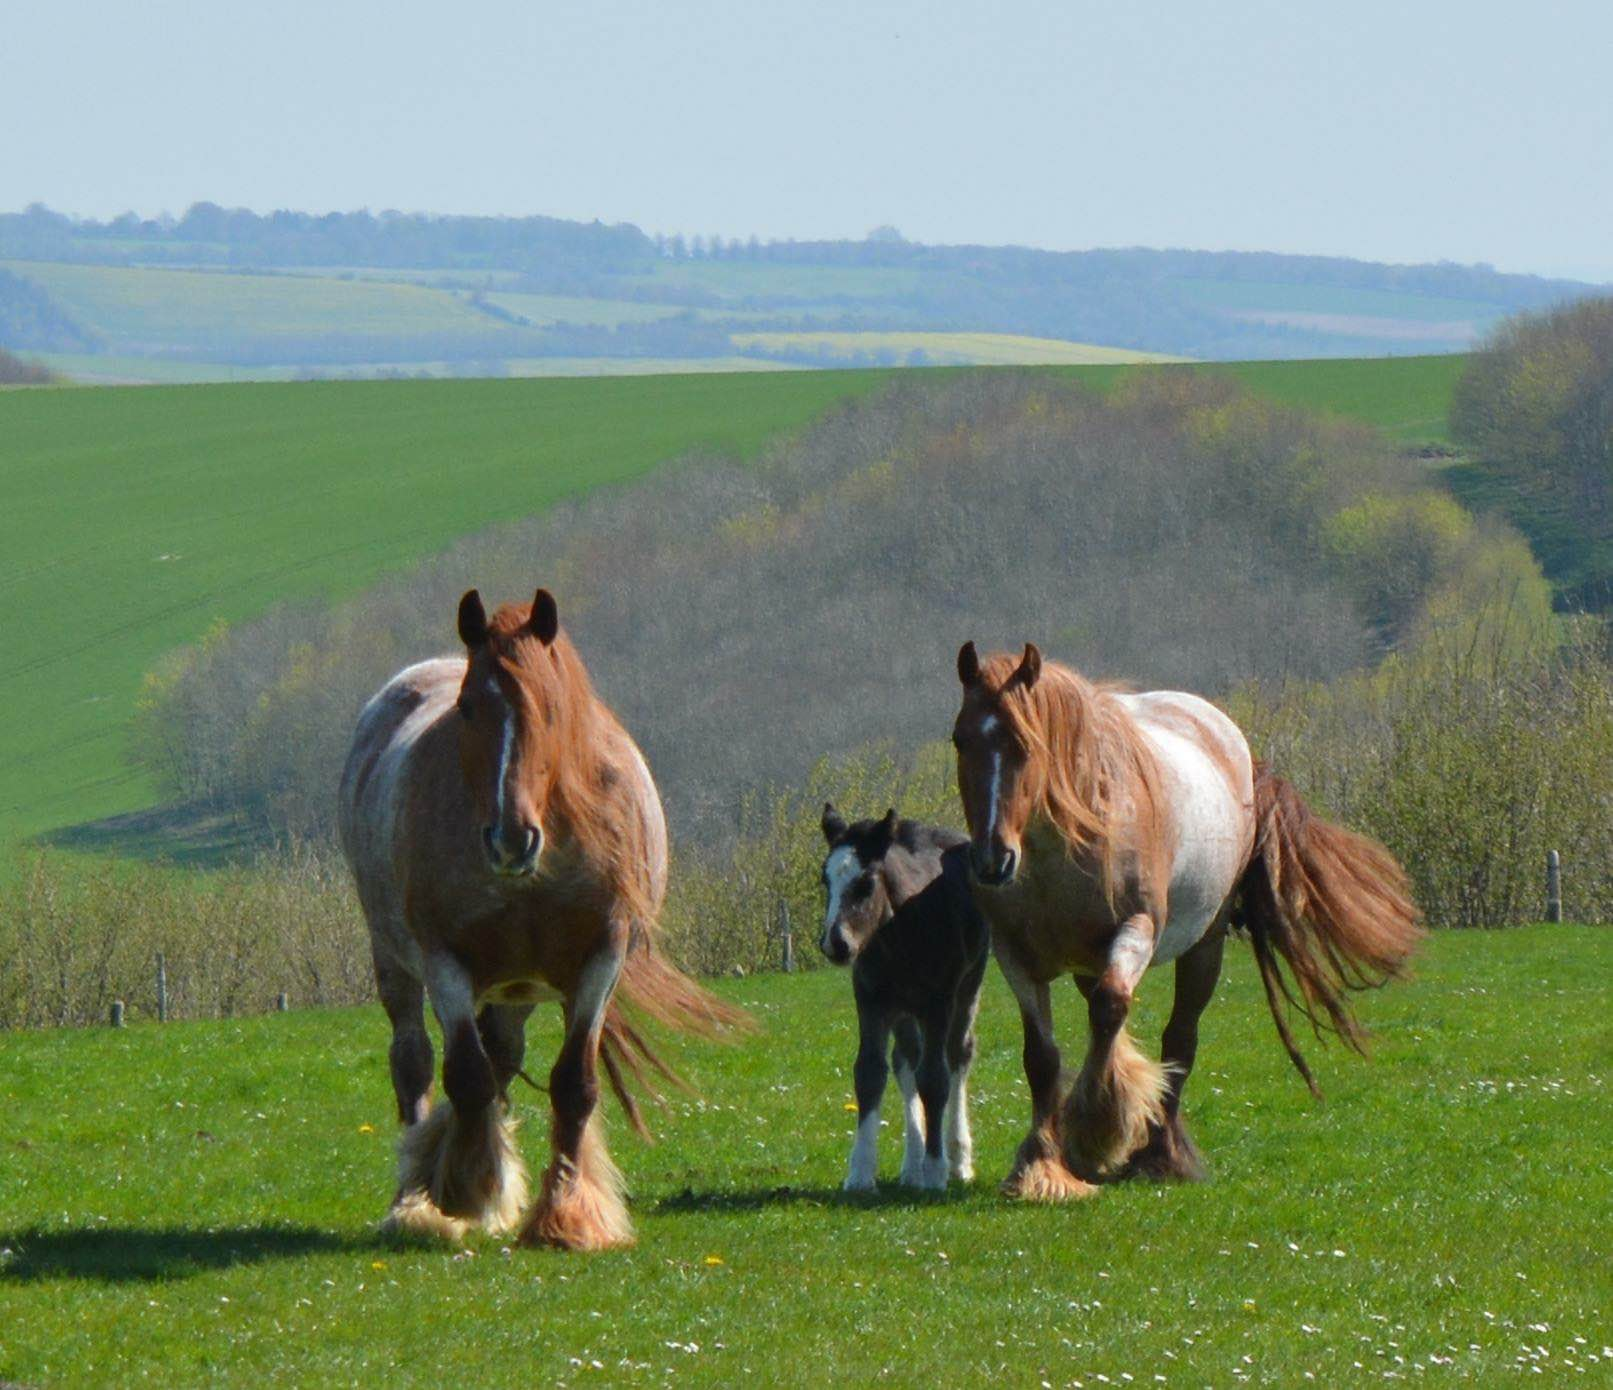 SD Red Mare & SD Red Filly